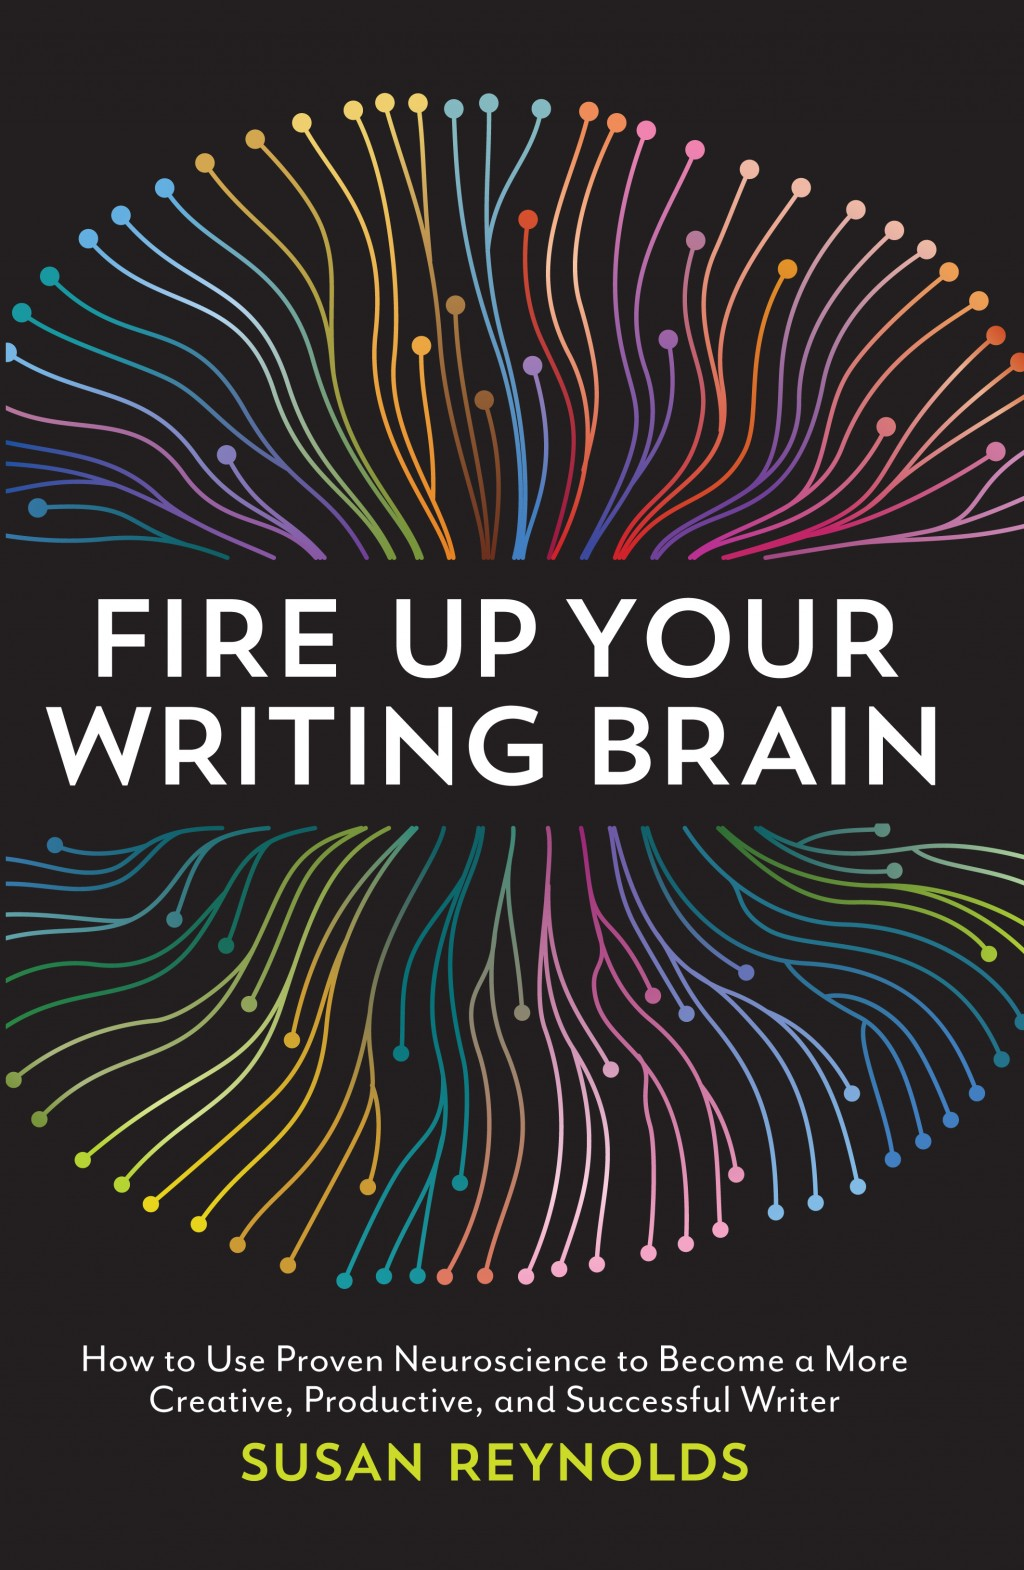 019 Essay Example Fire Up Your Writing Brain Models For Writers Short Essays Singular Composition 12th Edition Pdf 13th Large